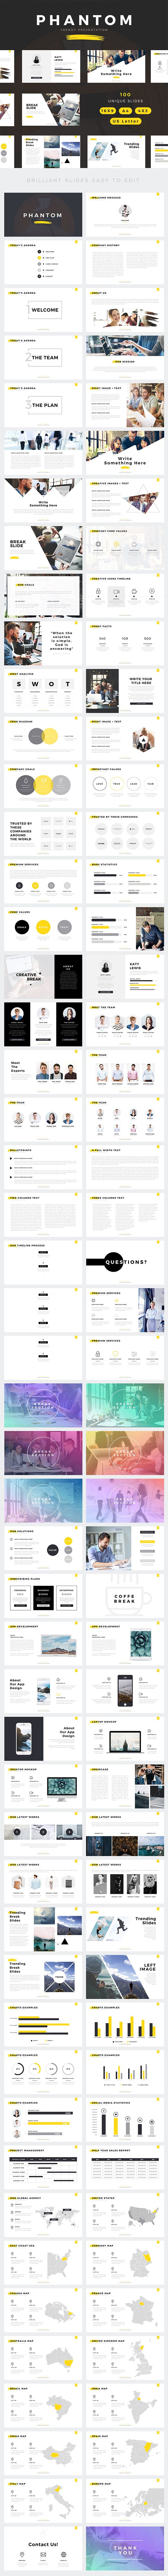 Best 152 powerpoint template images on pinterest power point phantom modern powerpoint template toneelgroepblik Gallery